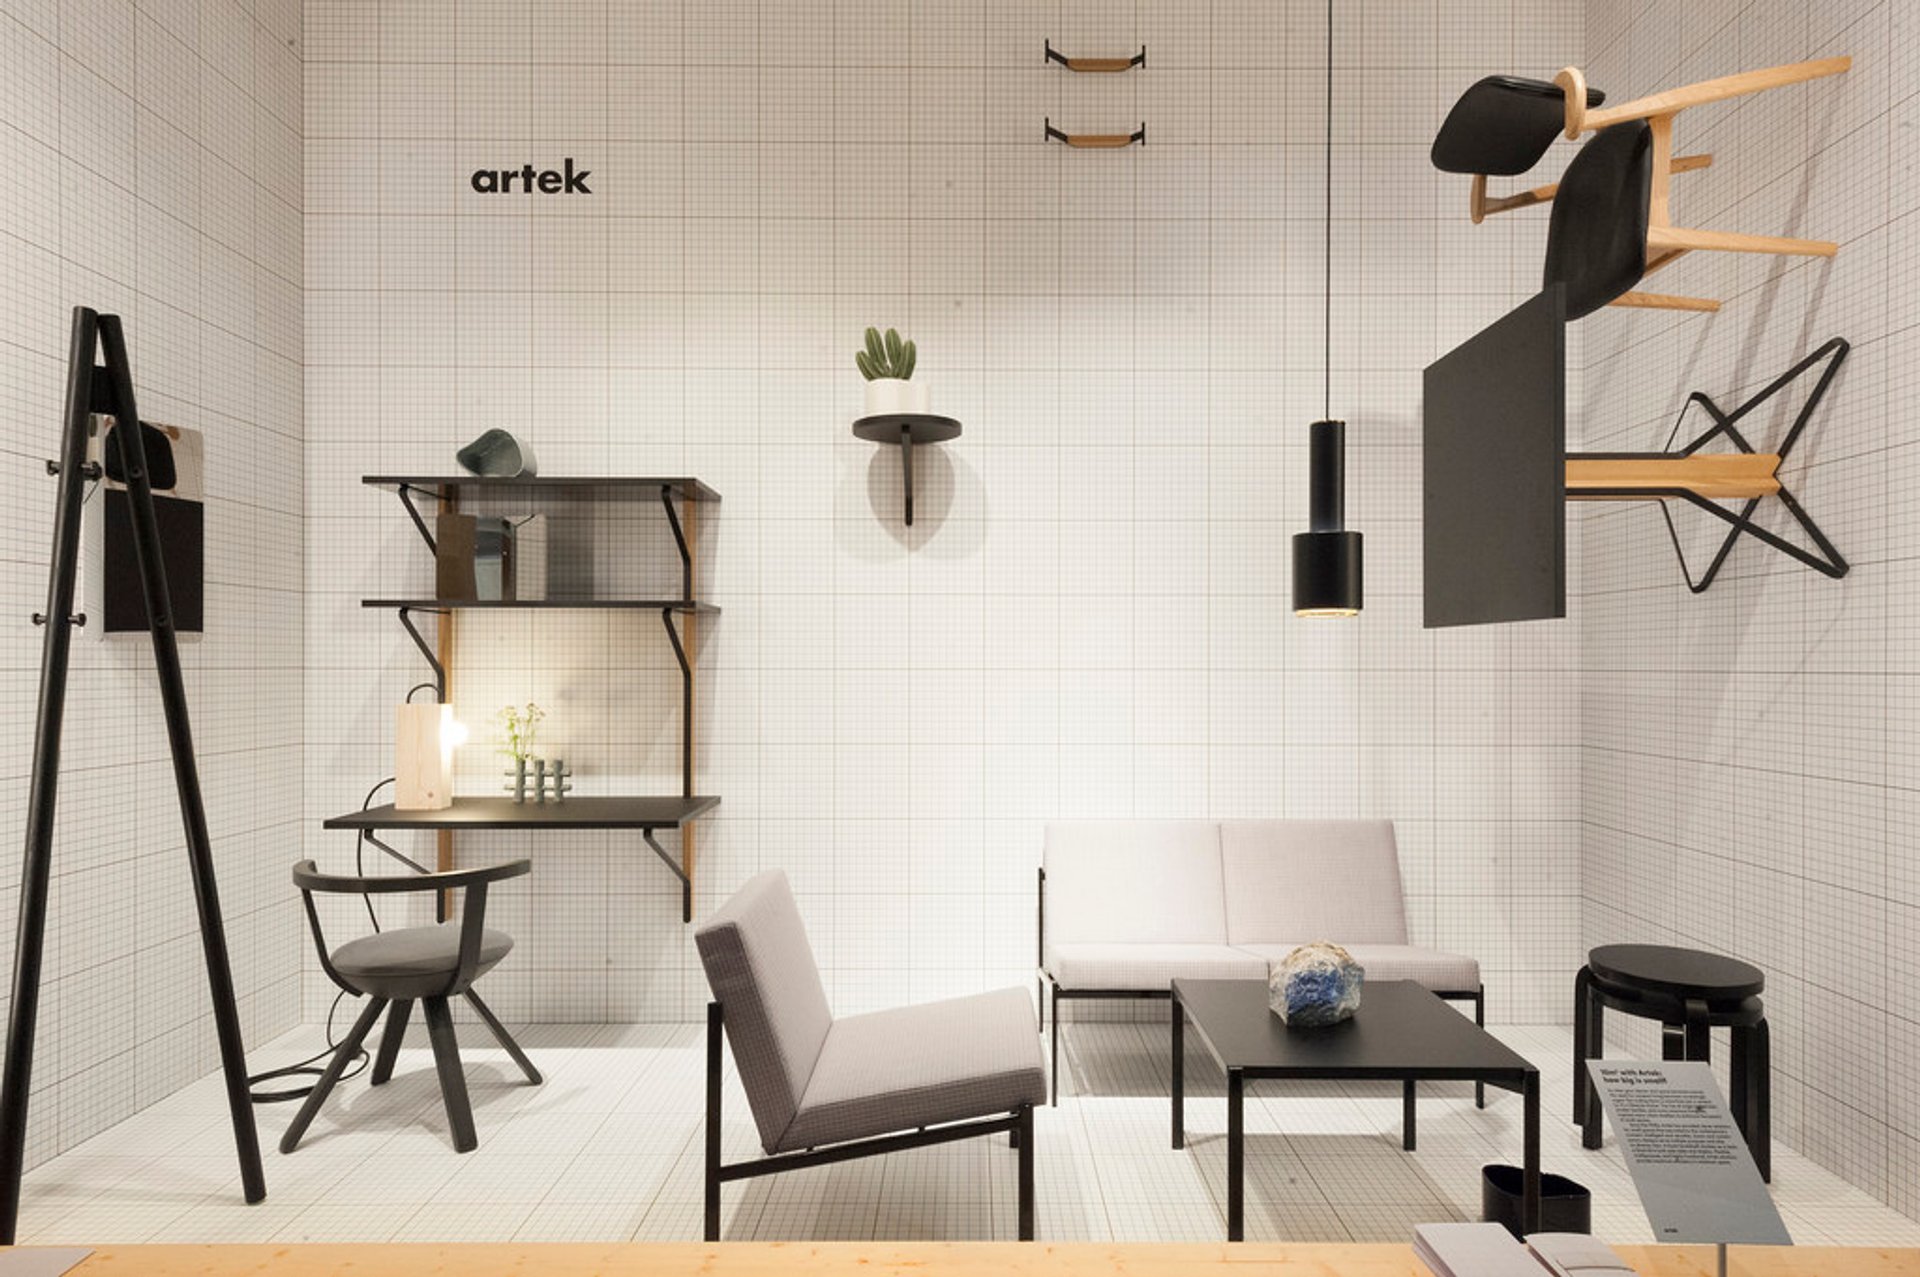 Salone del Mobile (Milan Furniture Fair) in Milan - Best Season 2020